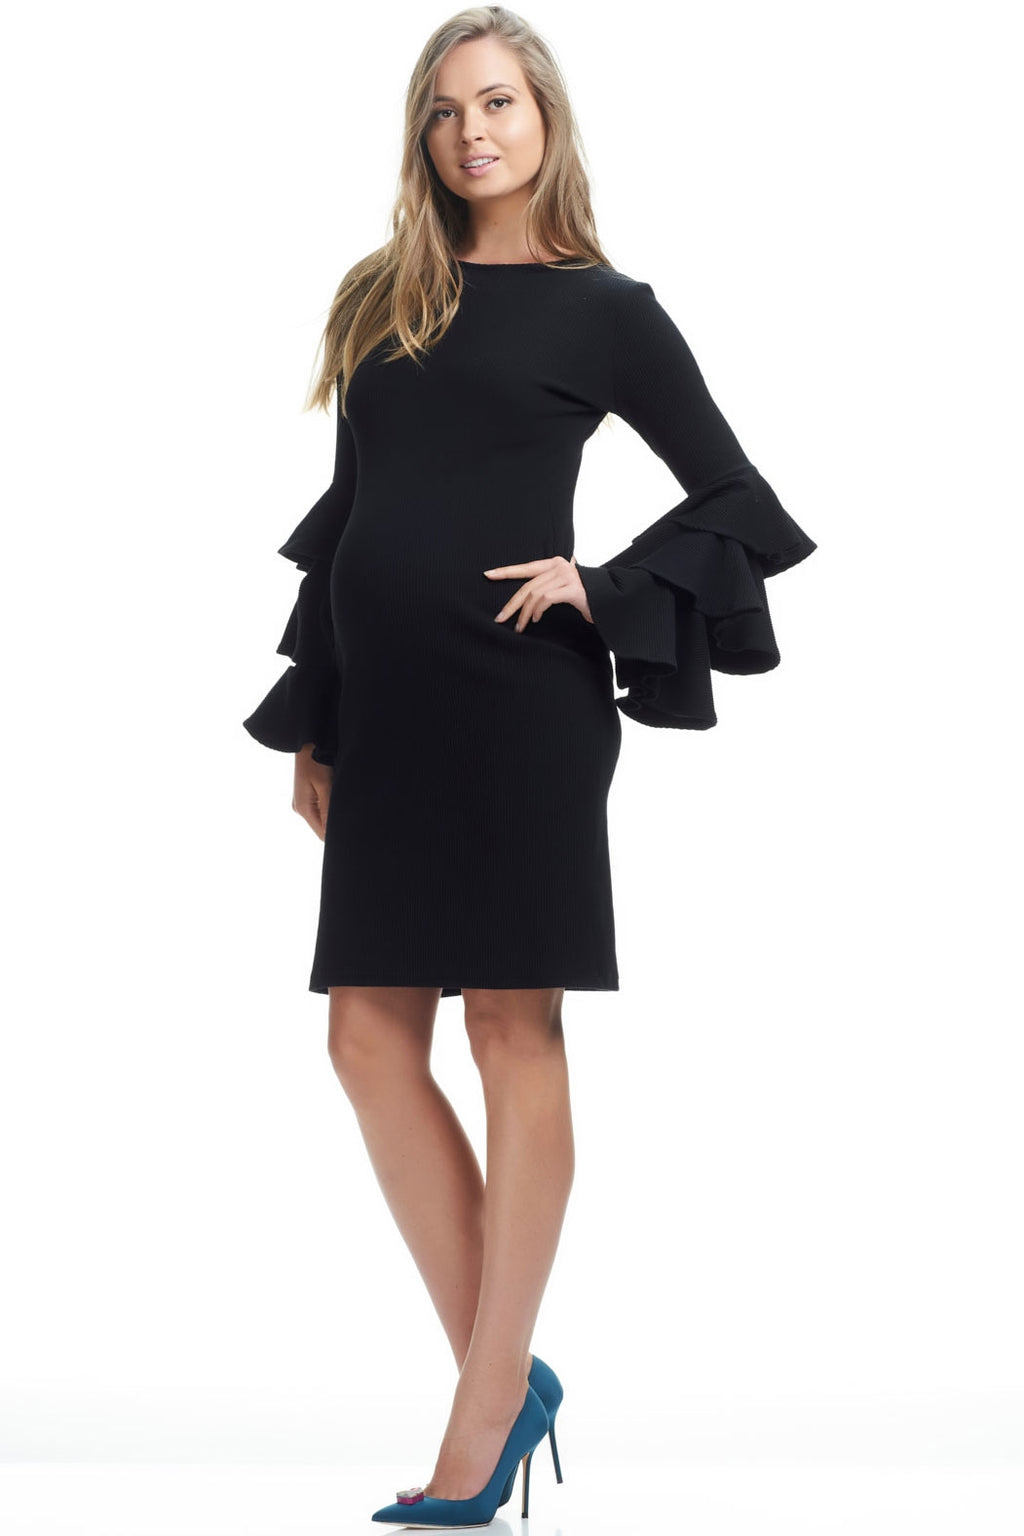 SOON Mei Hau Bella Sleeve Maternity Dress